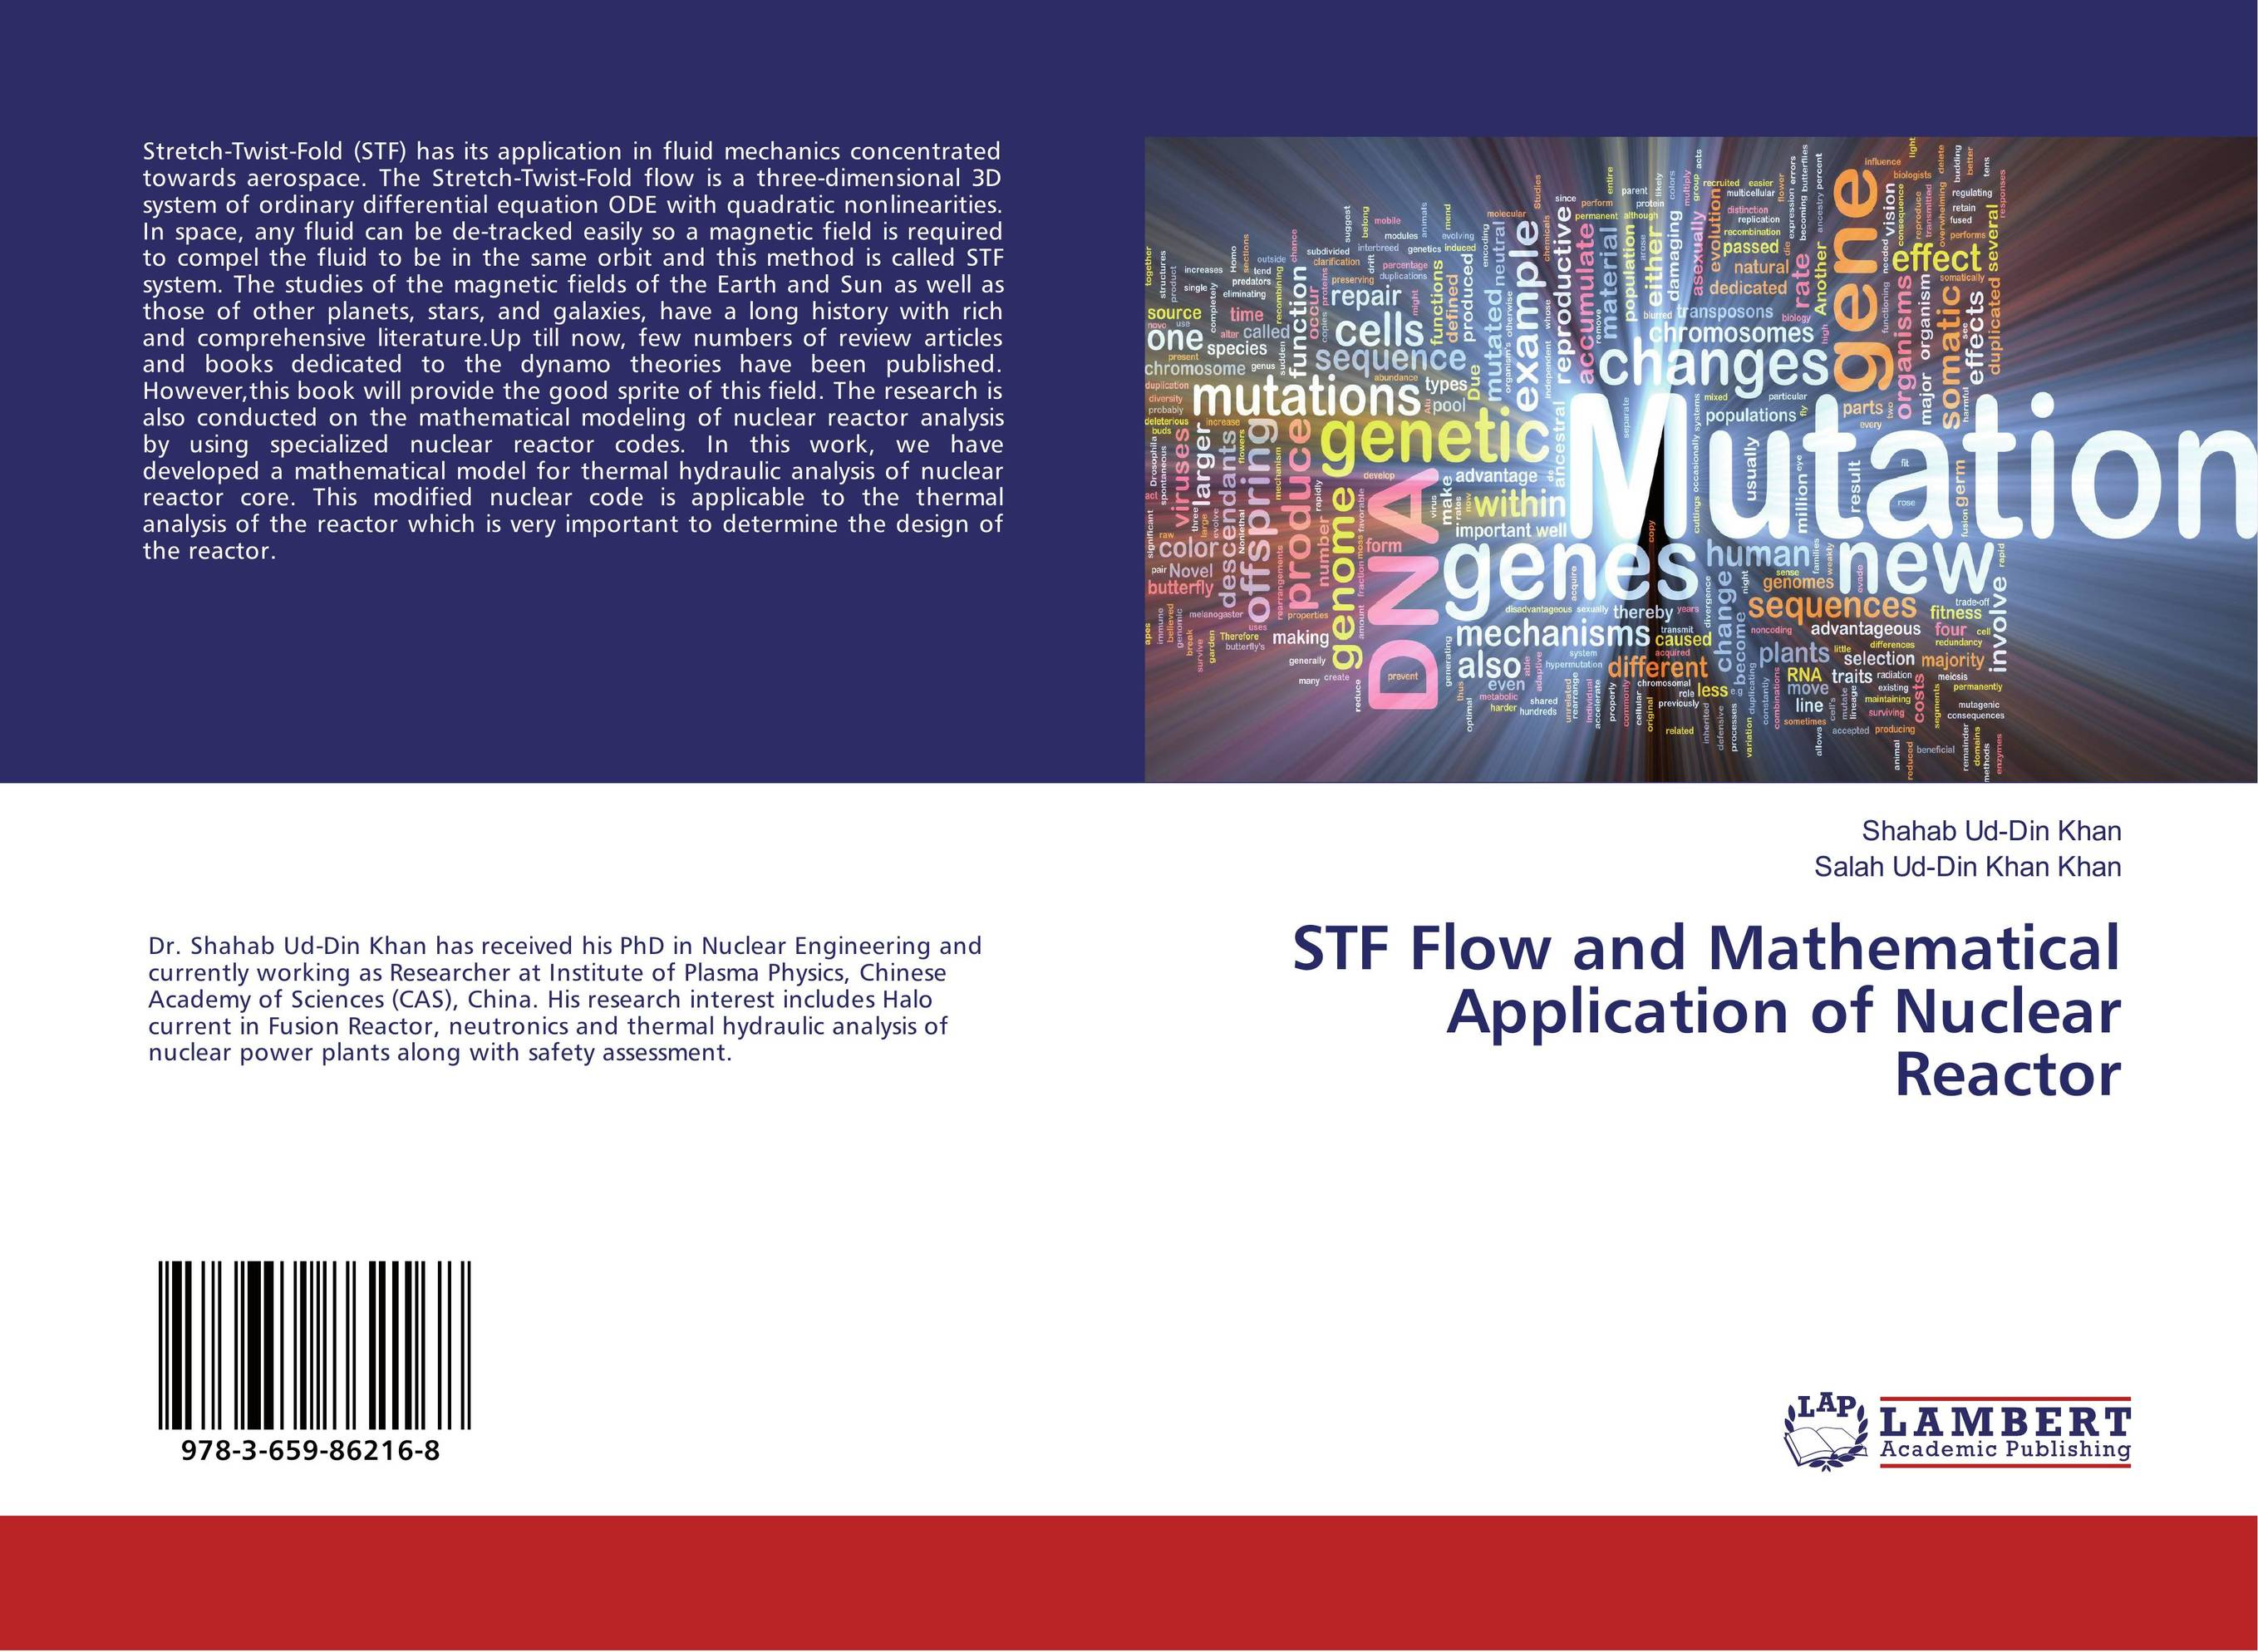 STF Flow and Mathematical Application of Nuclear Reactor купить